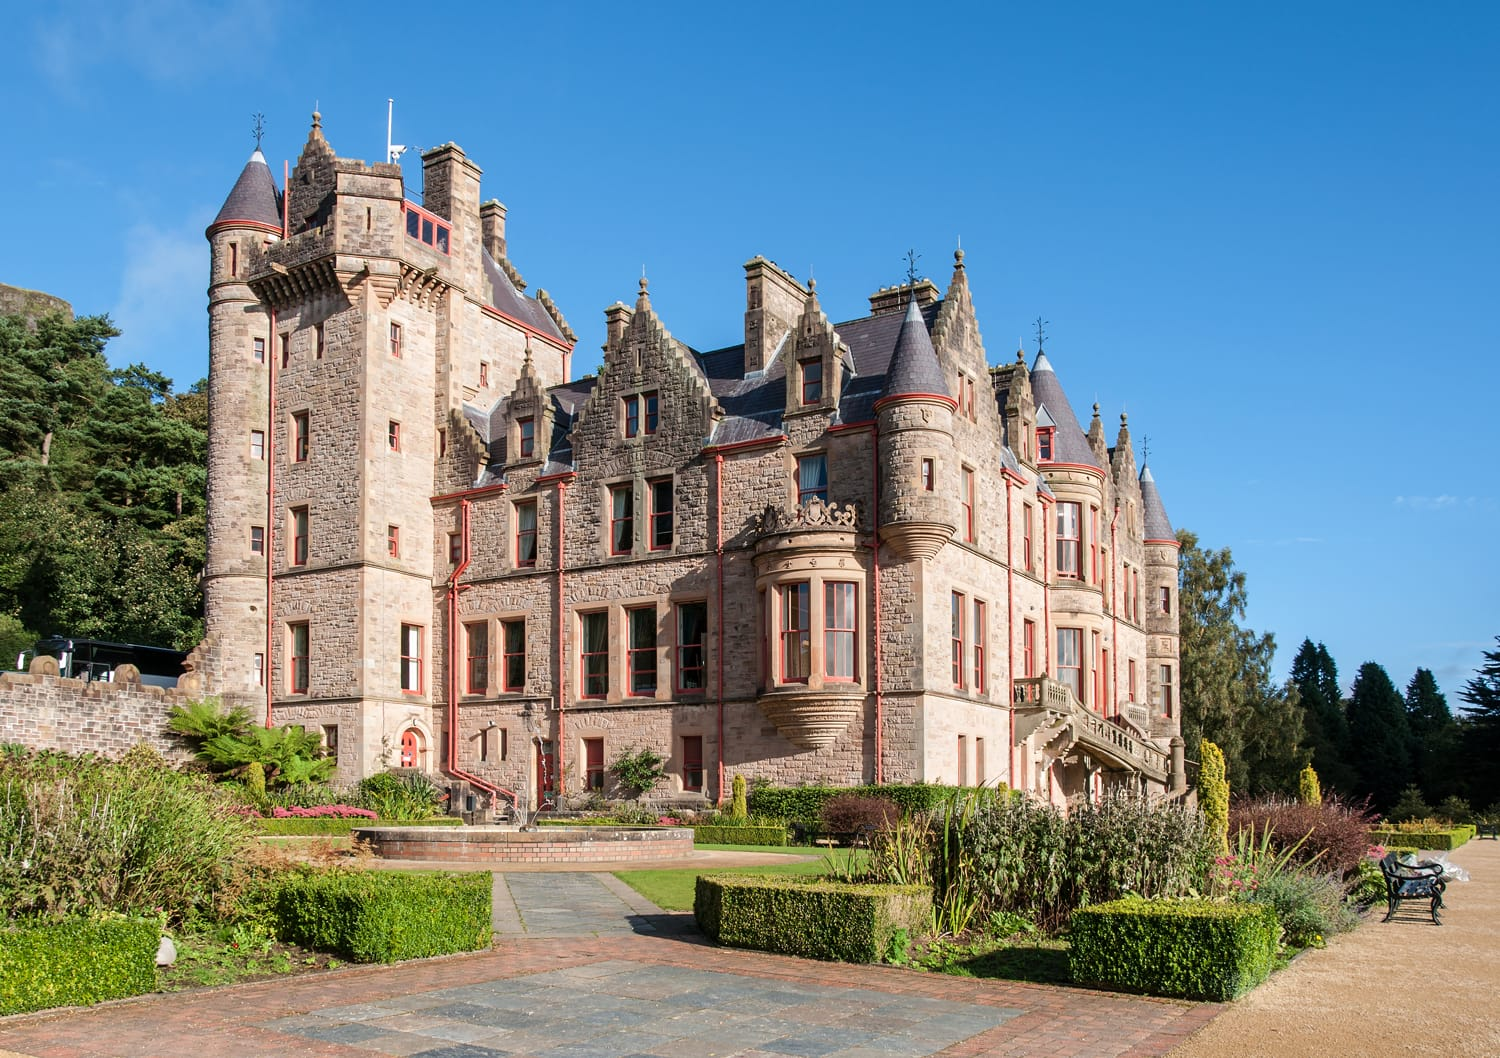 Belfast castle. Tourist attraction on the slopes of Cavehill Country Park in Belfast, Northern Ireland